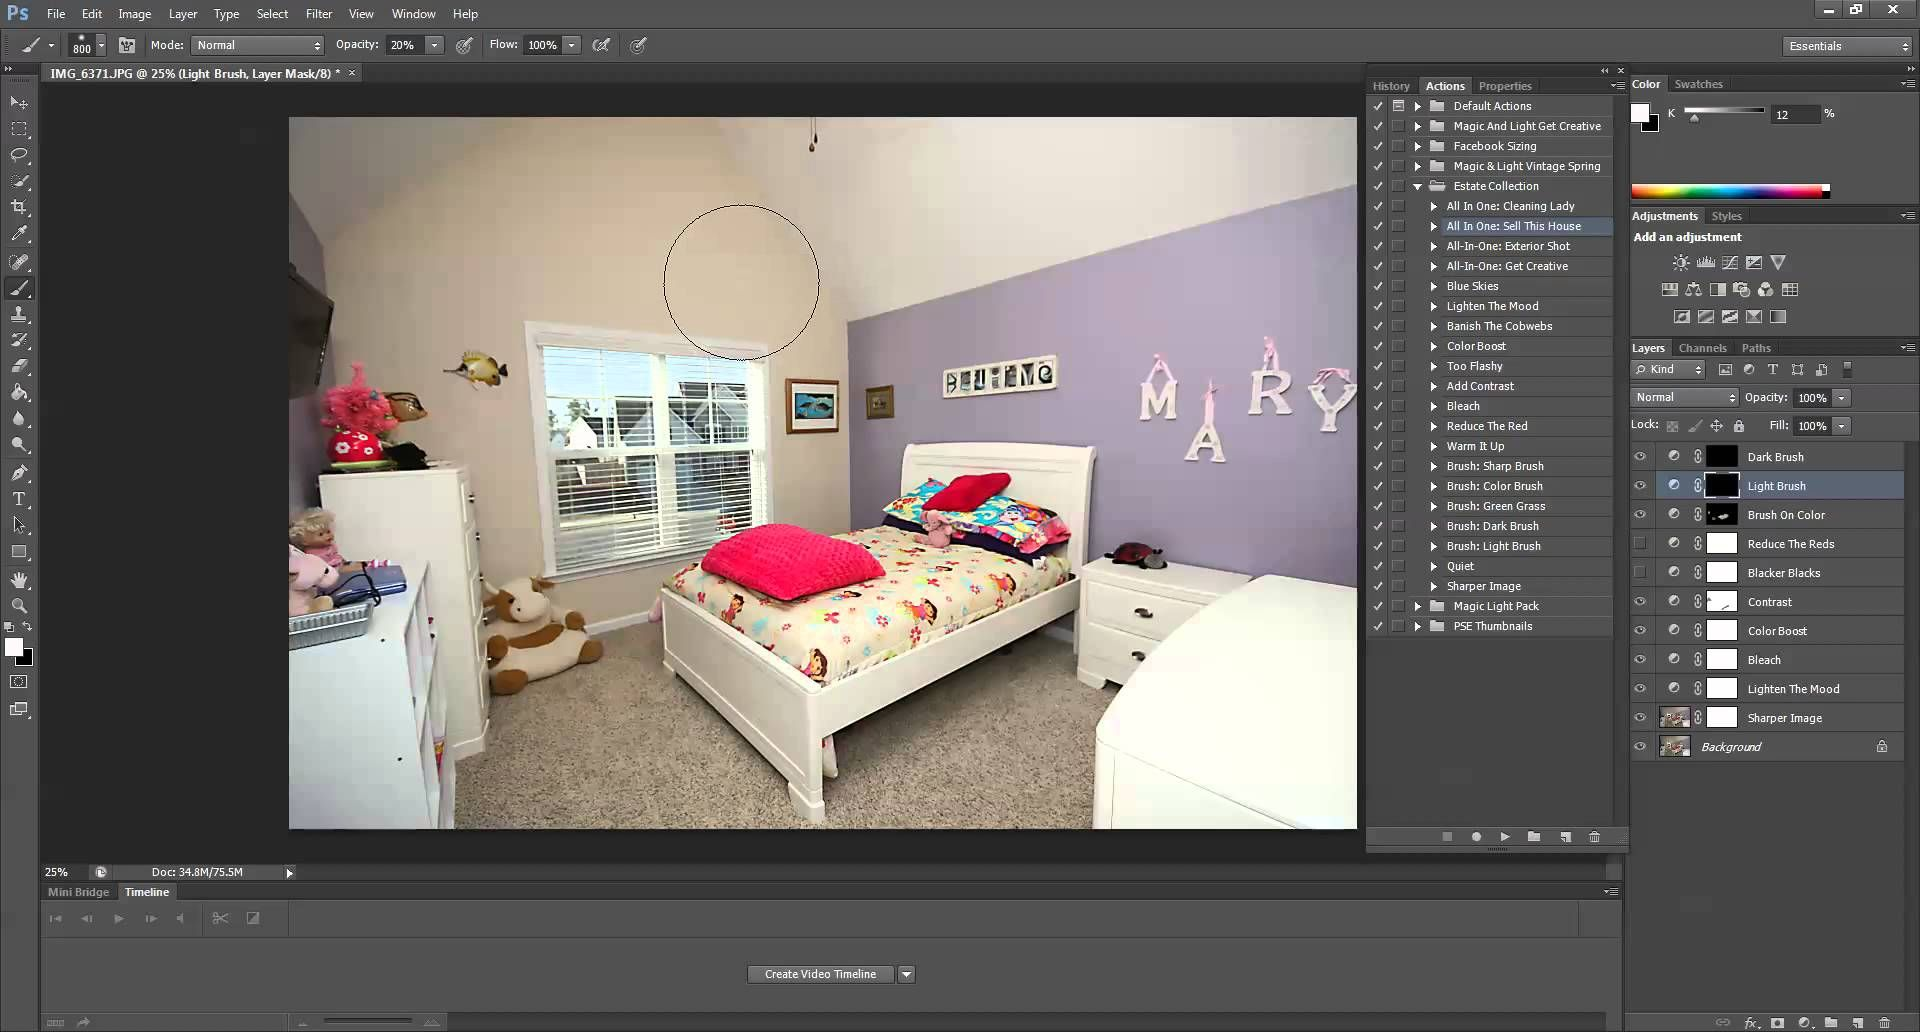 How to edit interior photos in photoshop and photoshop elements how to edit interior photos in photoshop and photoshop elements baditri Images